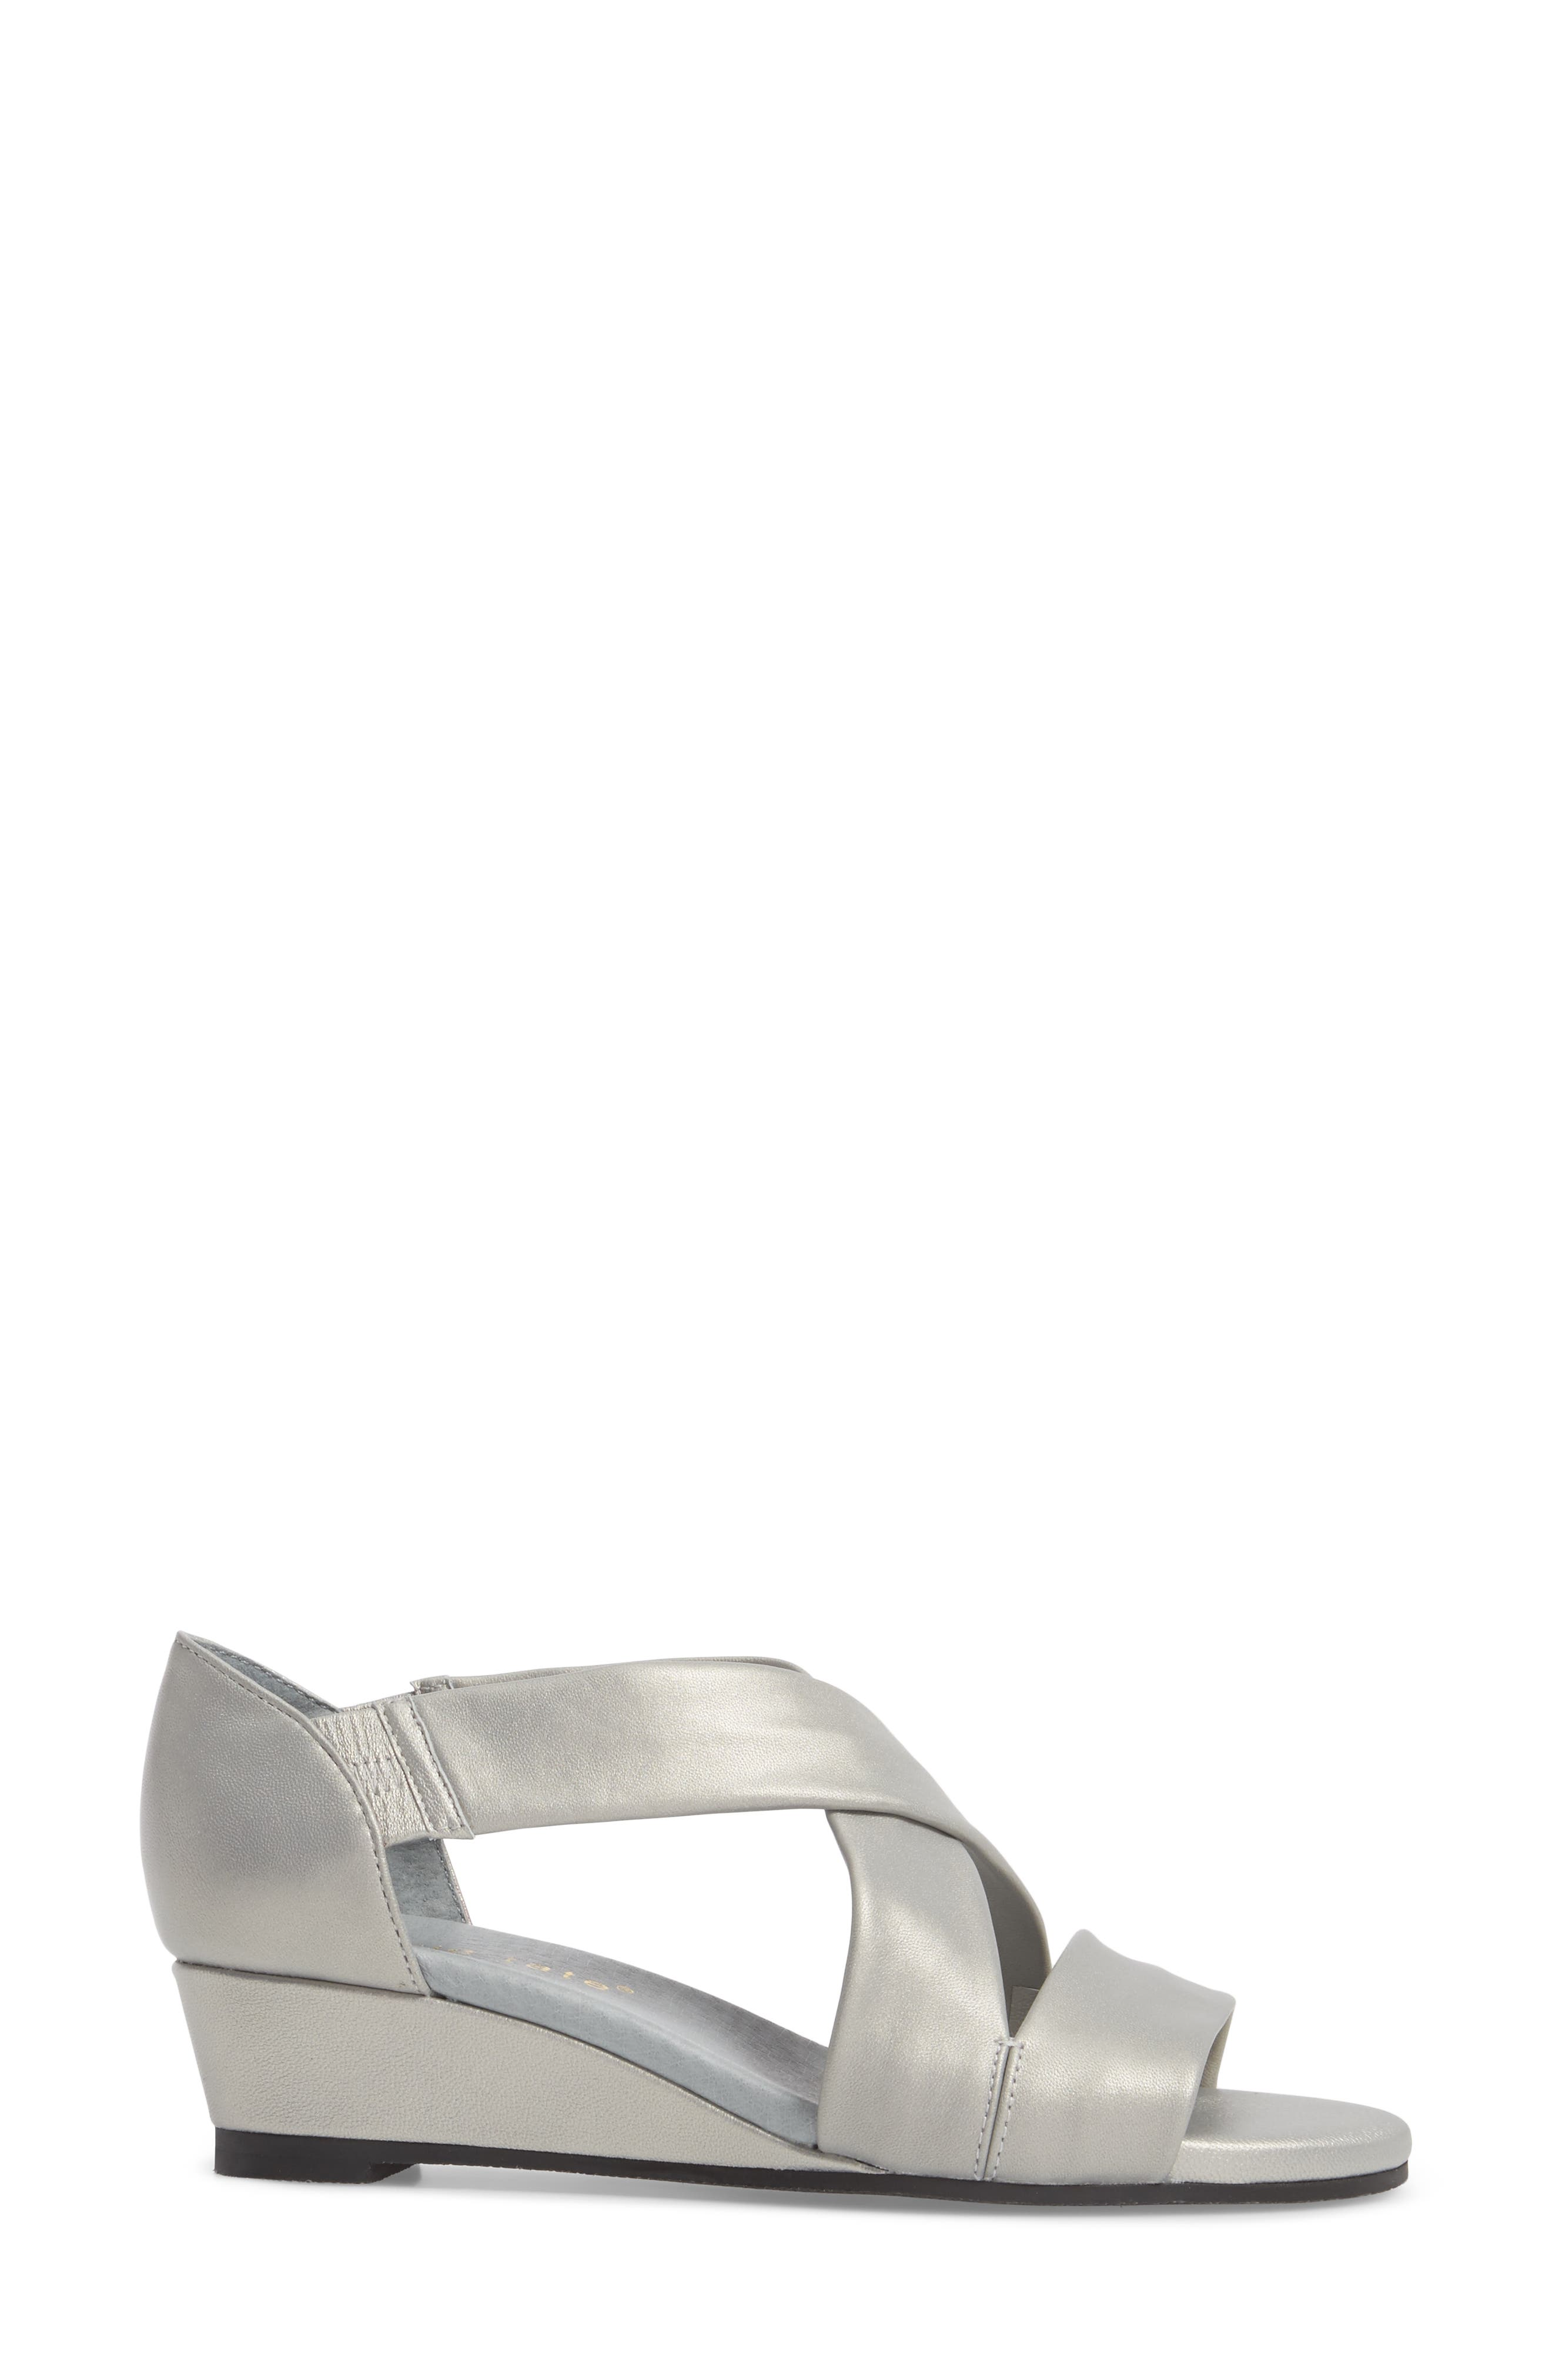 DAVID TATE, Swell Cross Strap Wedge Sandal, Alternate thumbnail 3, color, SILVER LEATHER